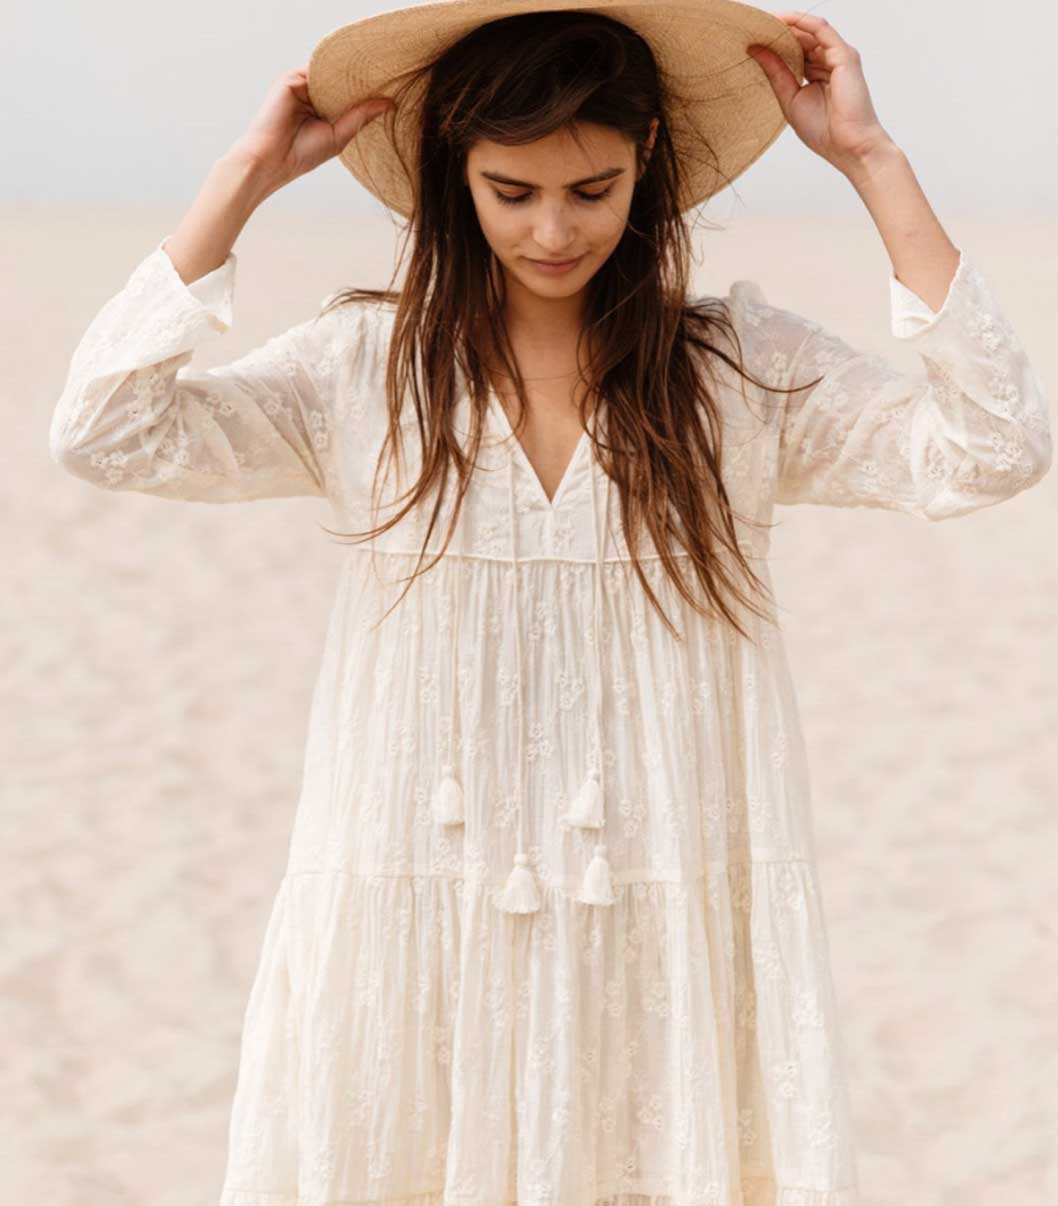 Los Angeles Labels Christy Dawn Eco Lookbook ethical sustainable fashion